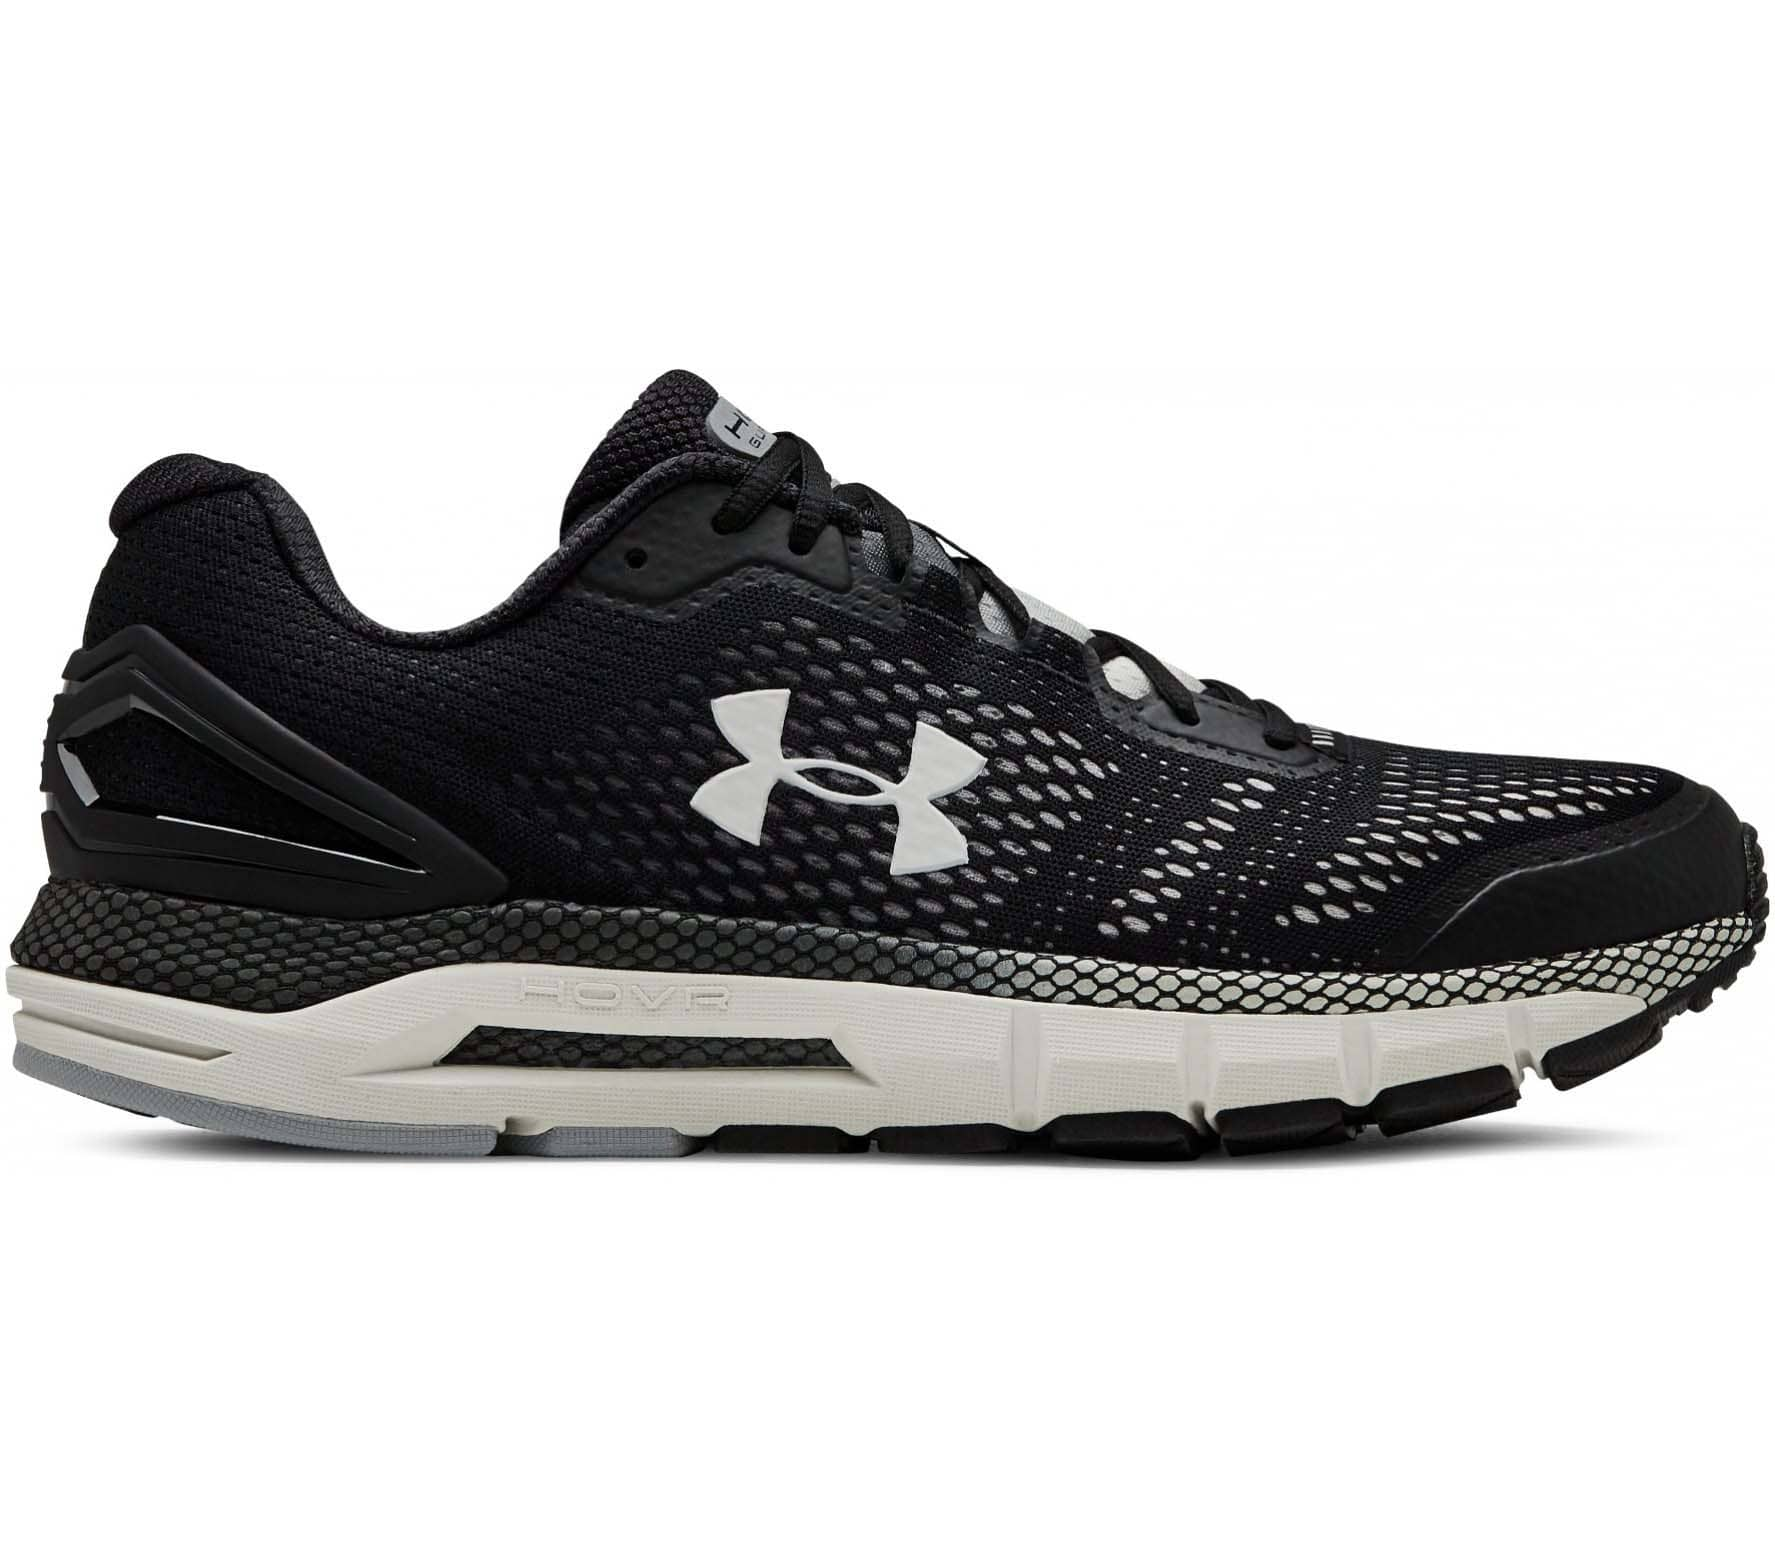 faa9a902d71 Under Armour - Hovr Guardian Hombre Zapatos para correr (negro ...